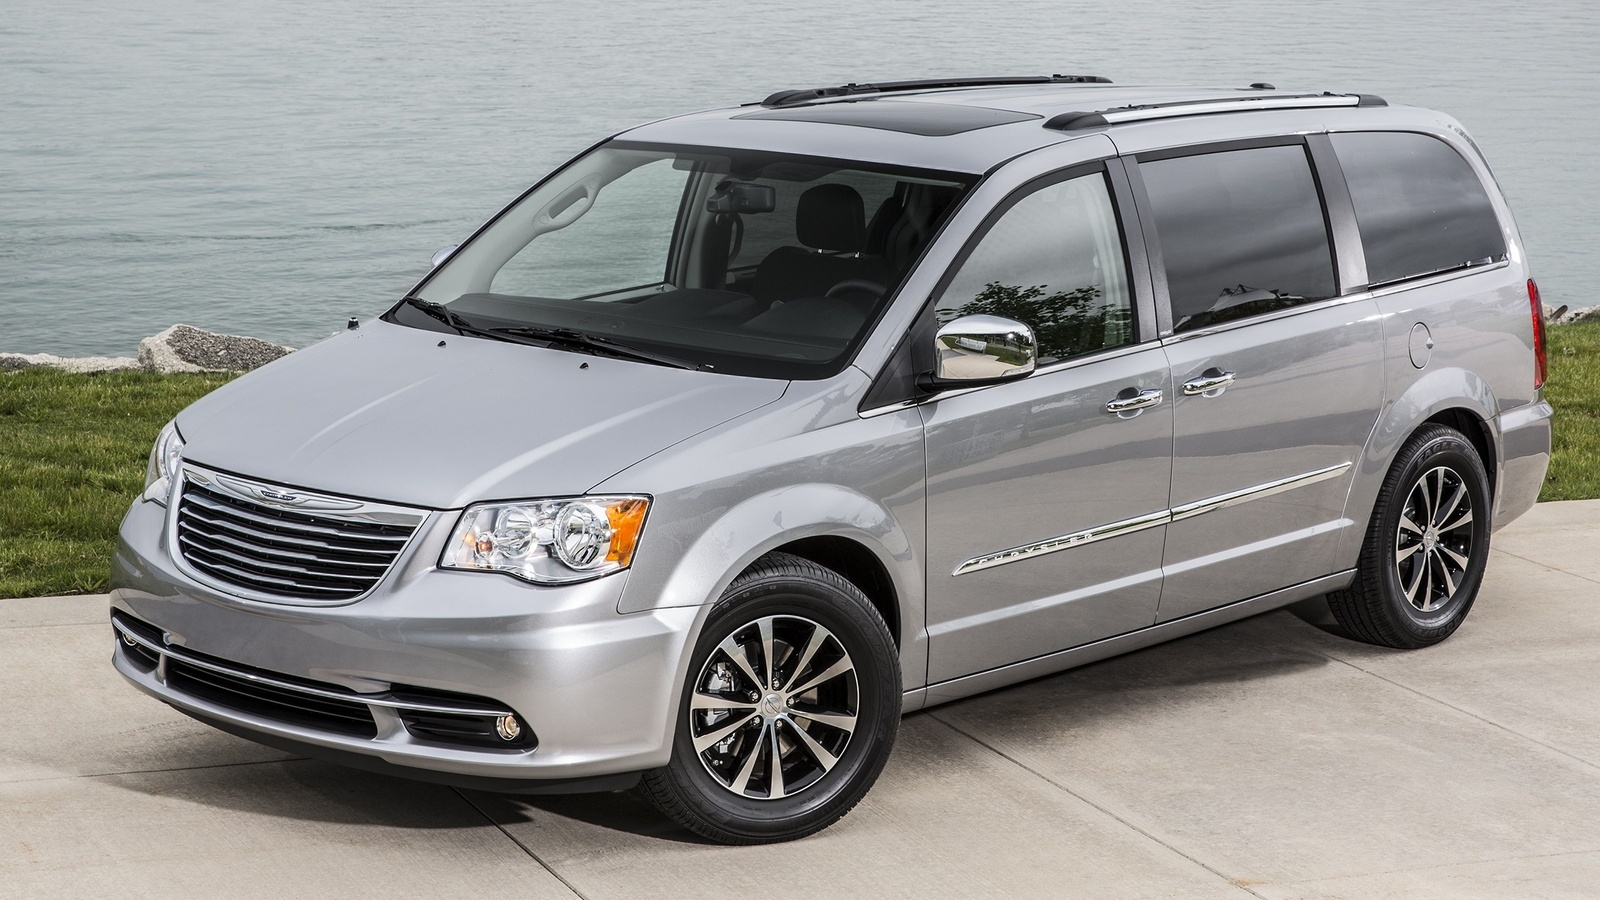 Cars compared to 2015 Dodge Grand Caravan